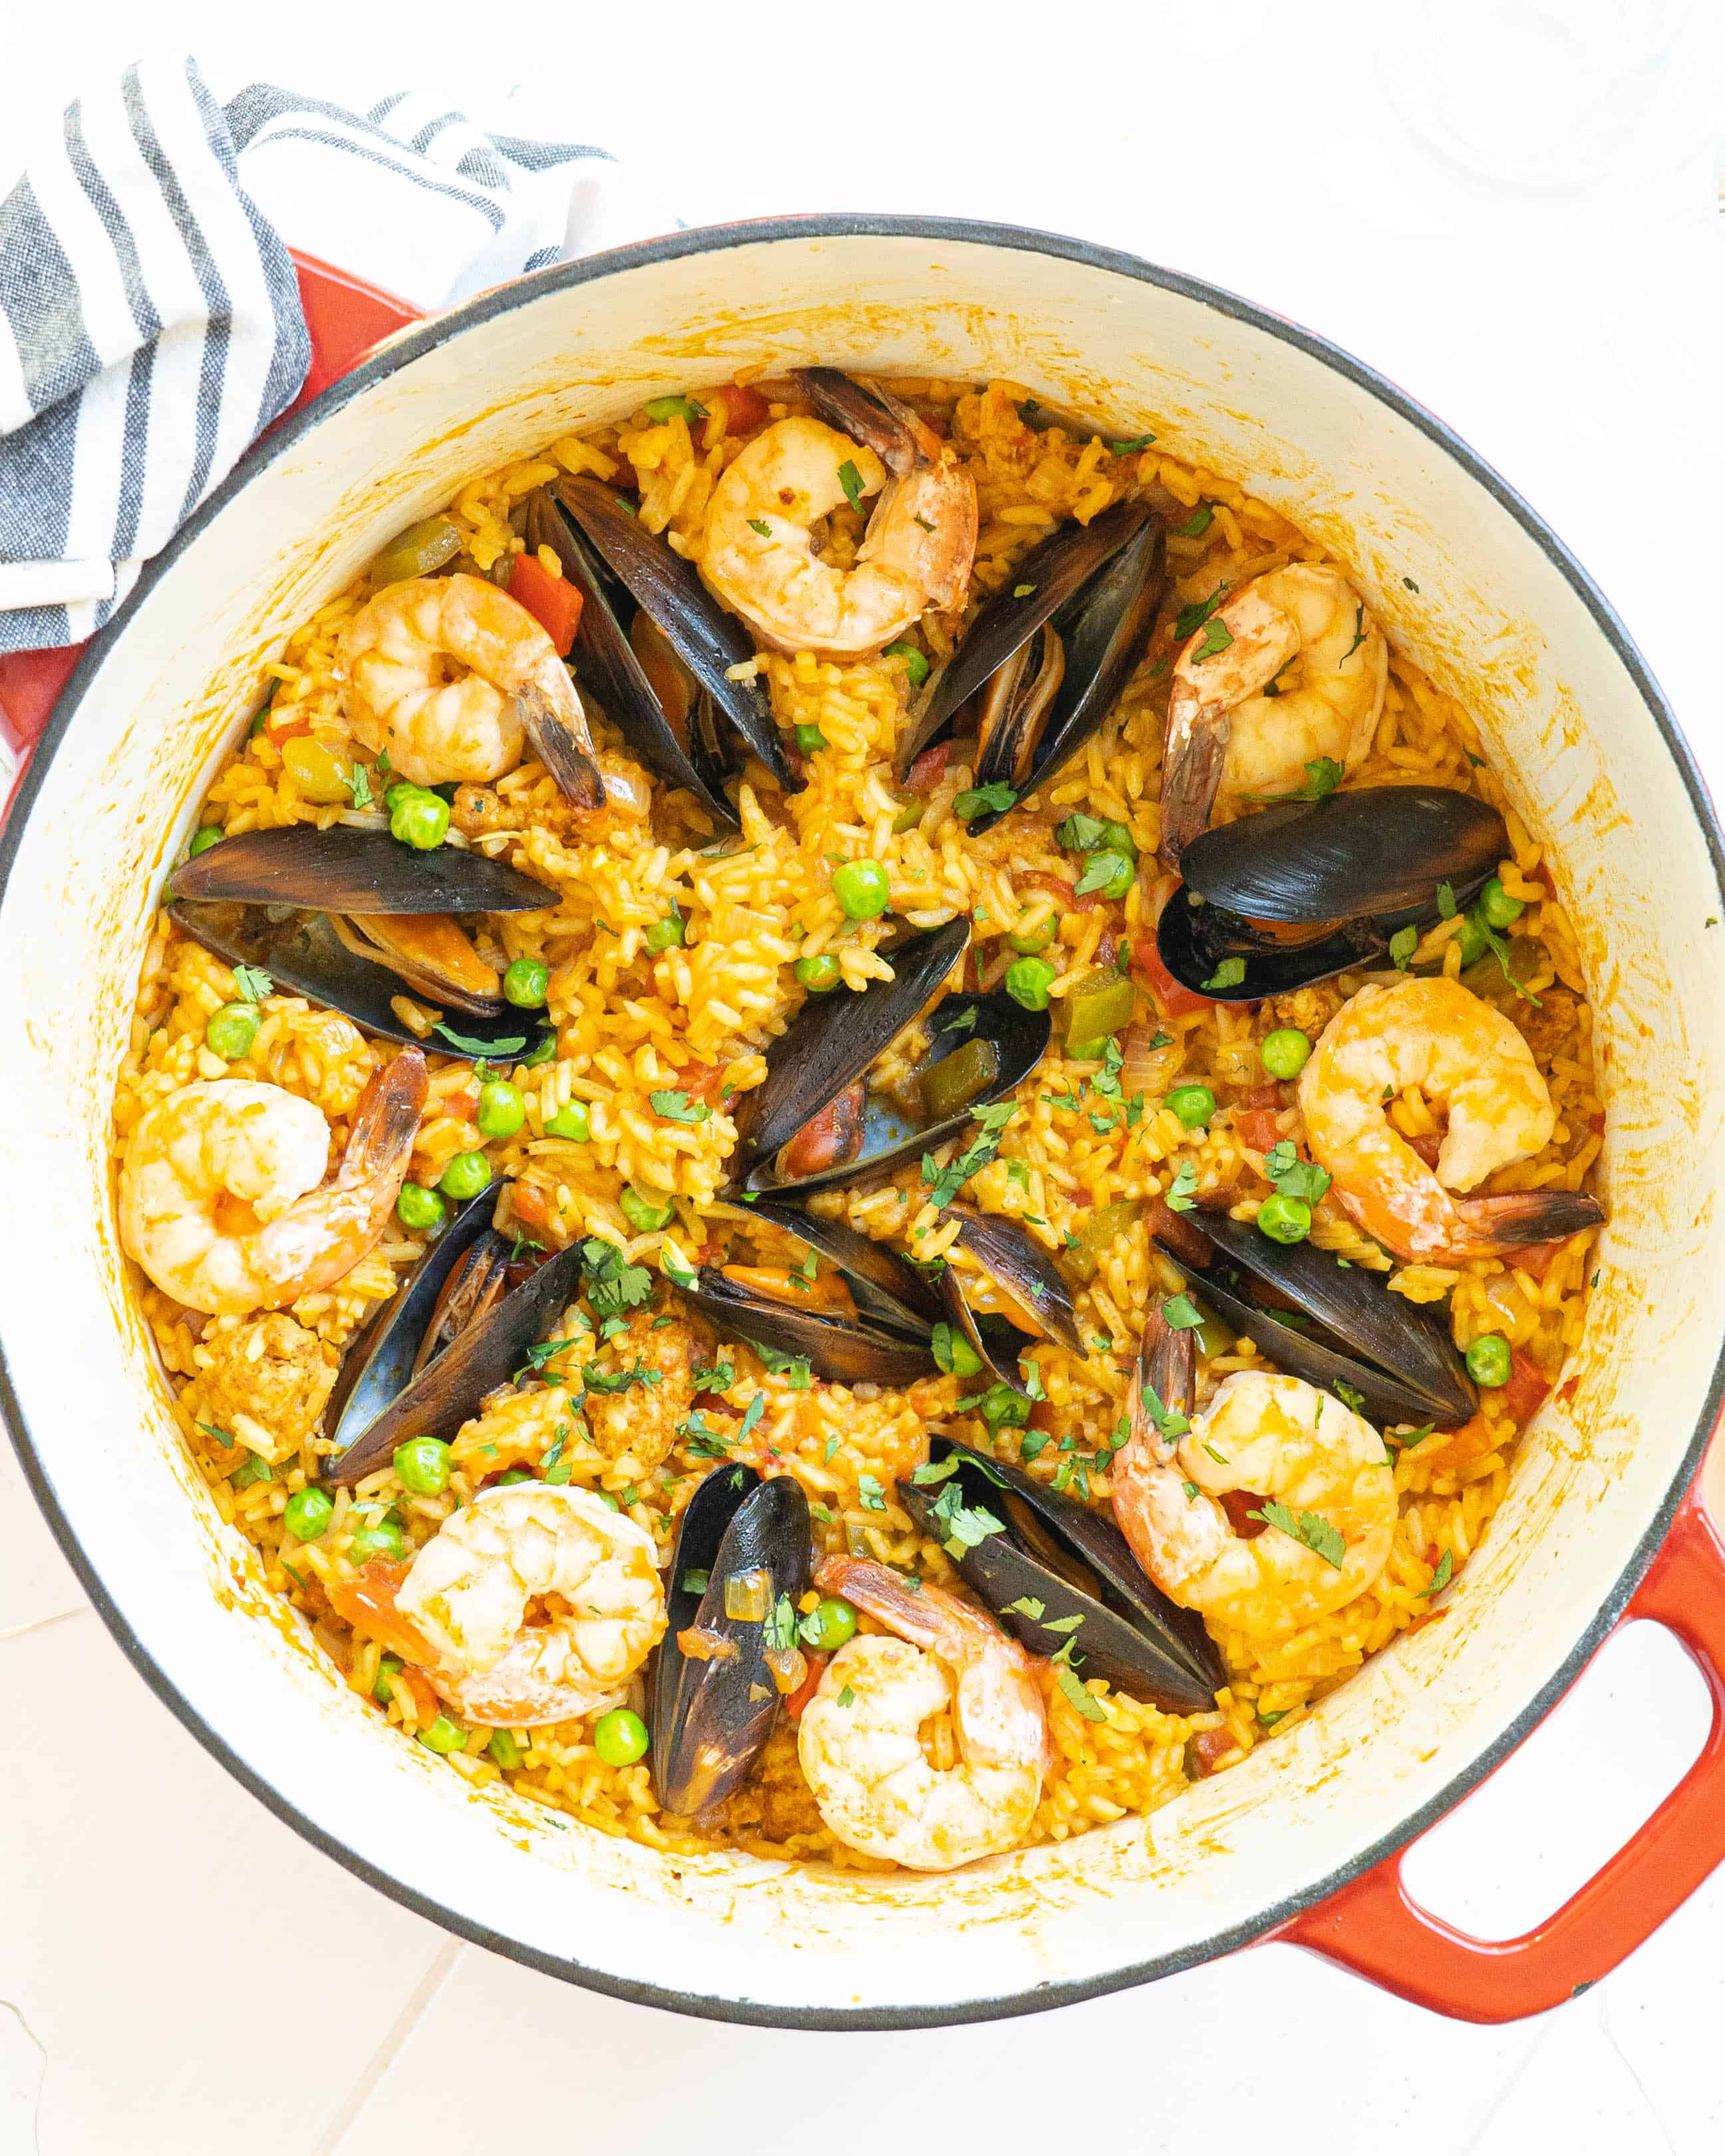 A pot full of seafood paella topped with mussels and shrimp